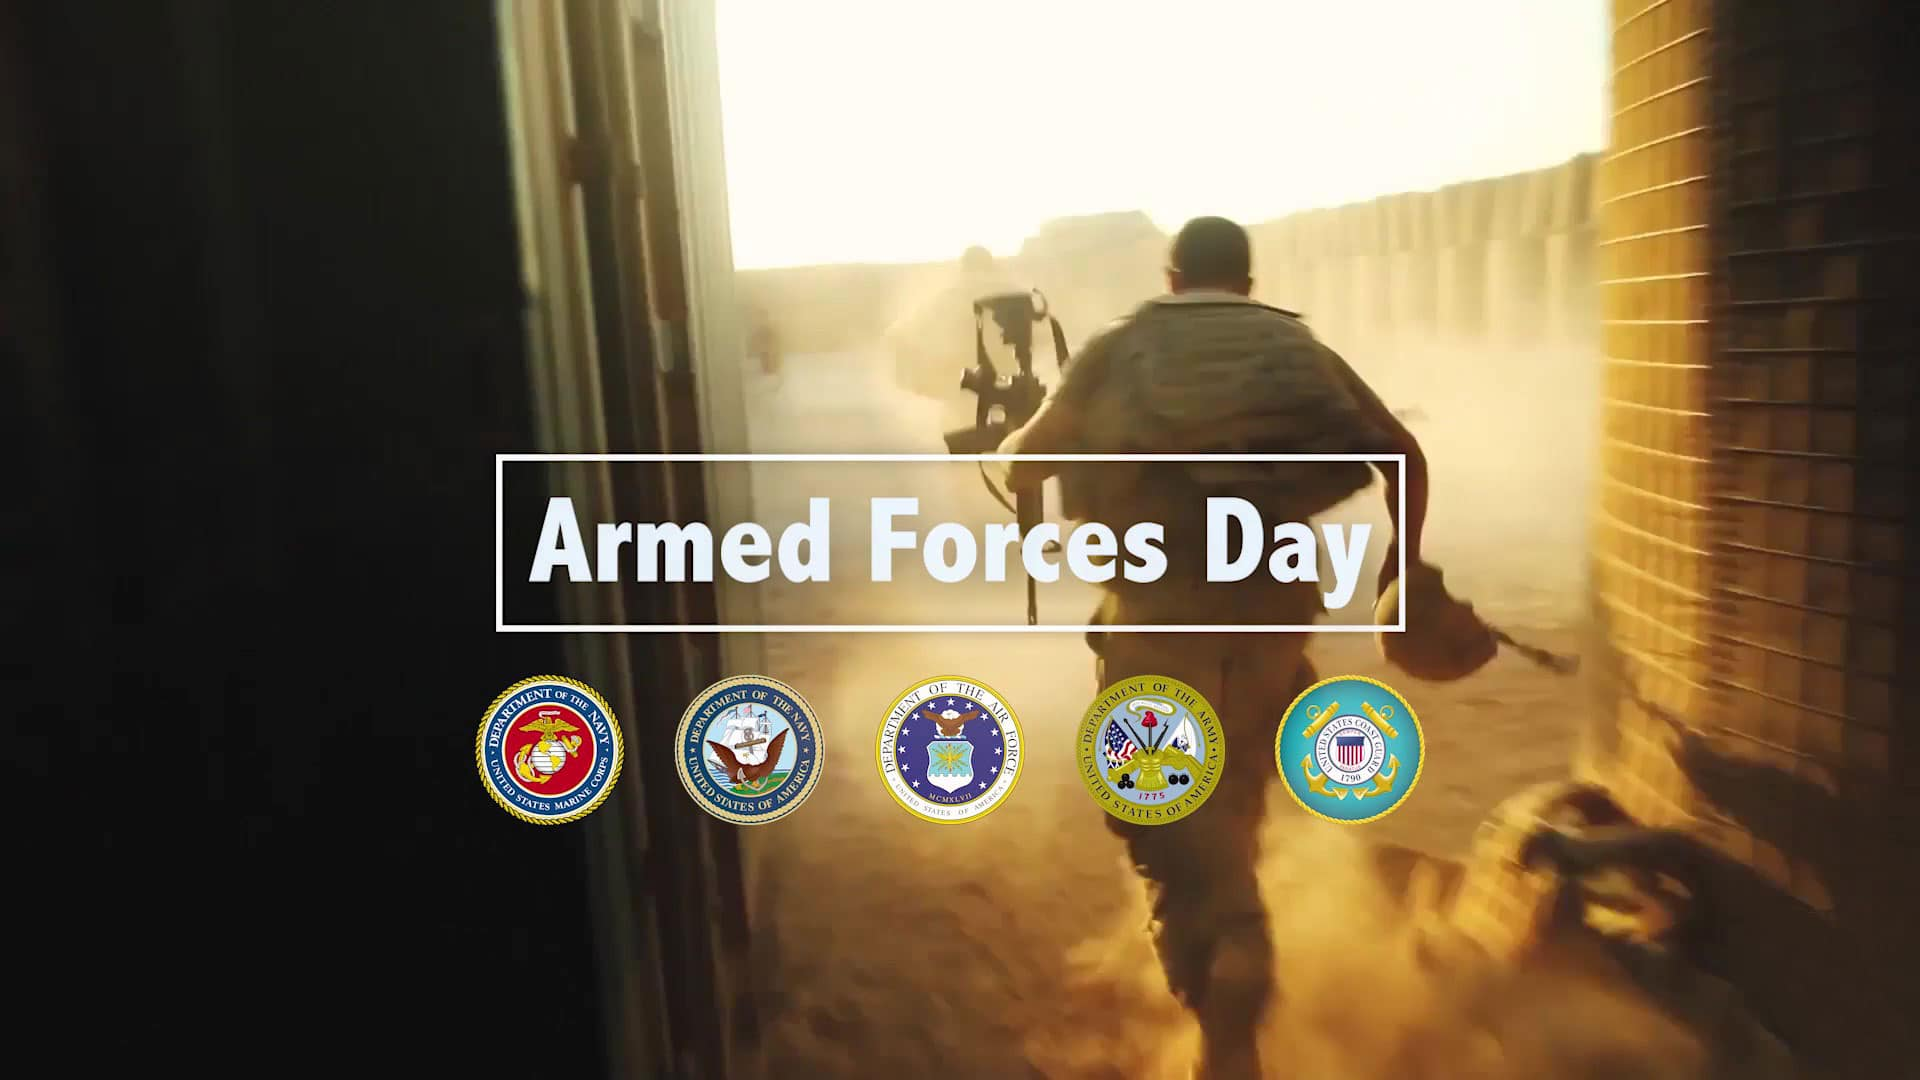 Armed Forces Day is celebrated annually in the United States on the third Saturday in May. The holiday was created on Aug. 31, 1949, to honor Americans serving in the U.S. military following the consolidation of the military services as the Department of Defense.